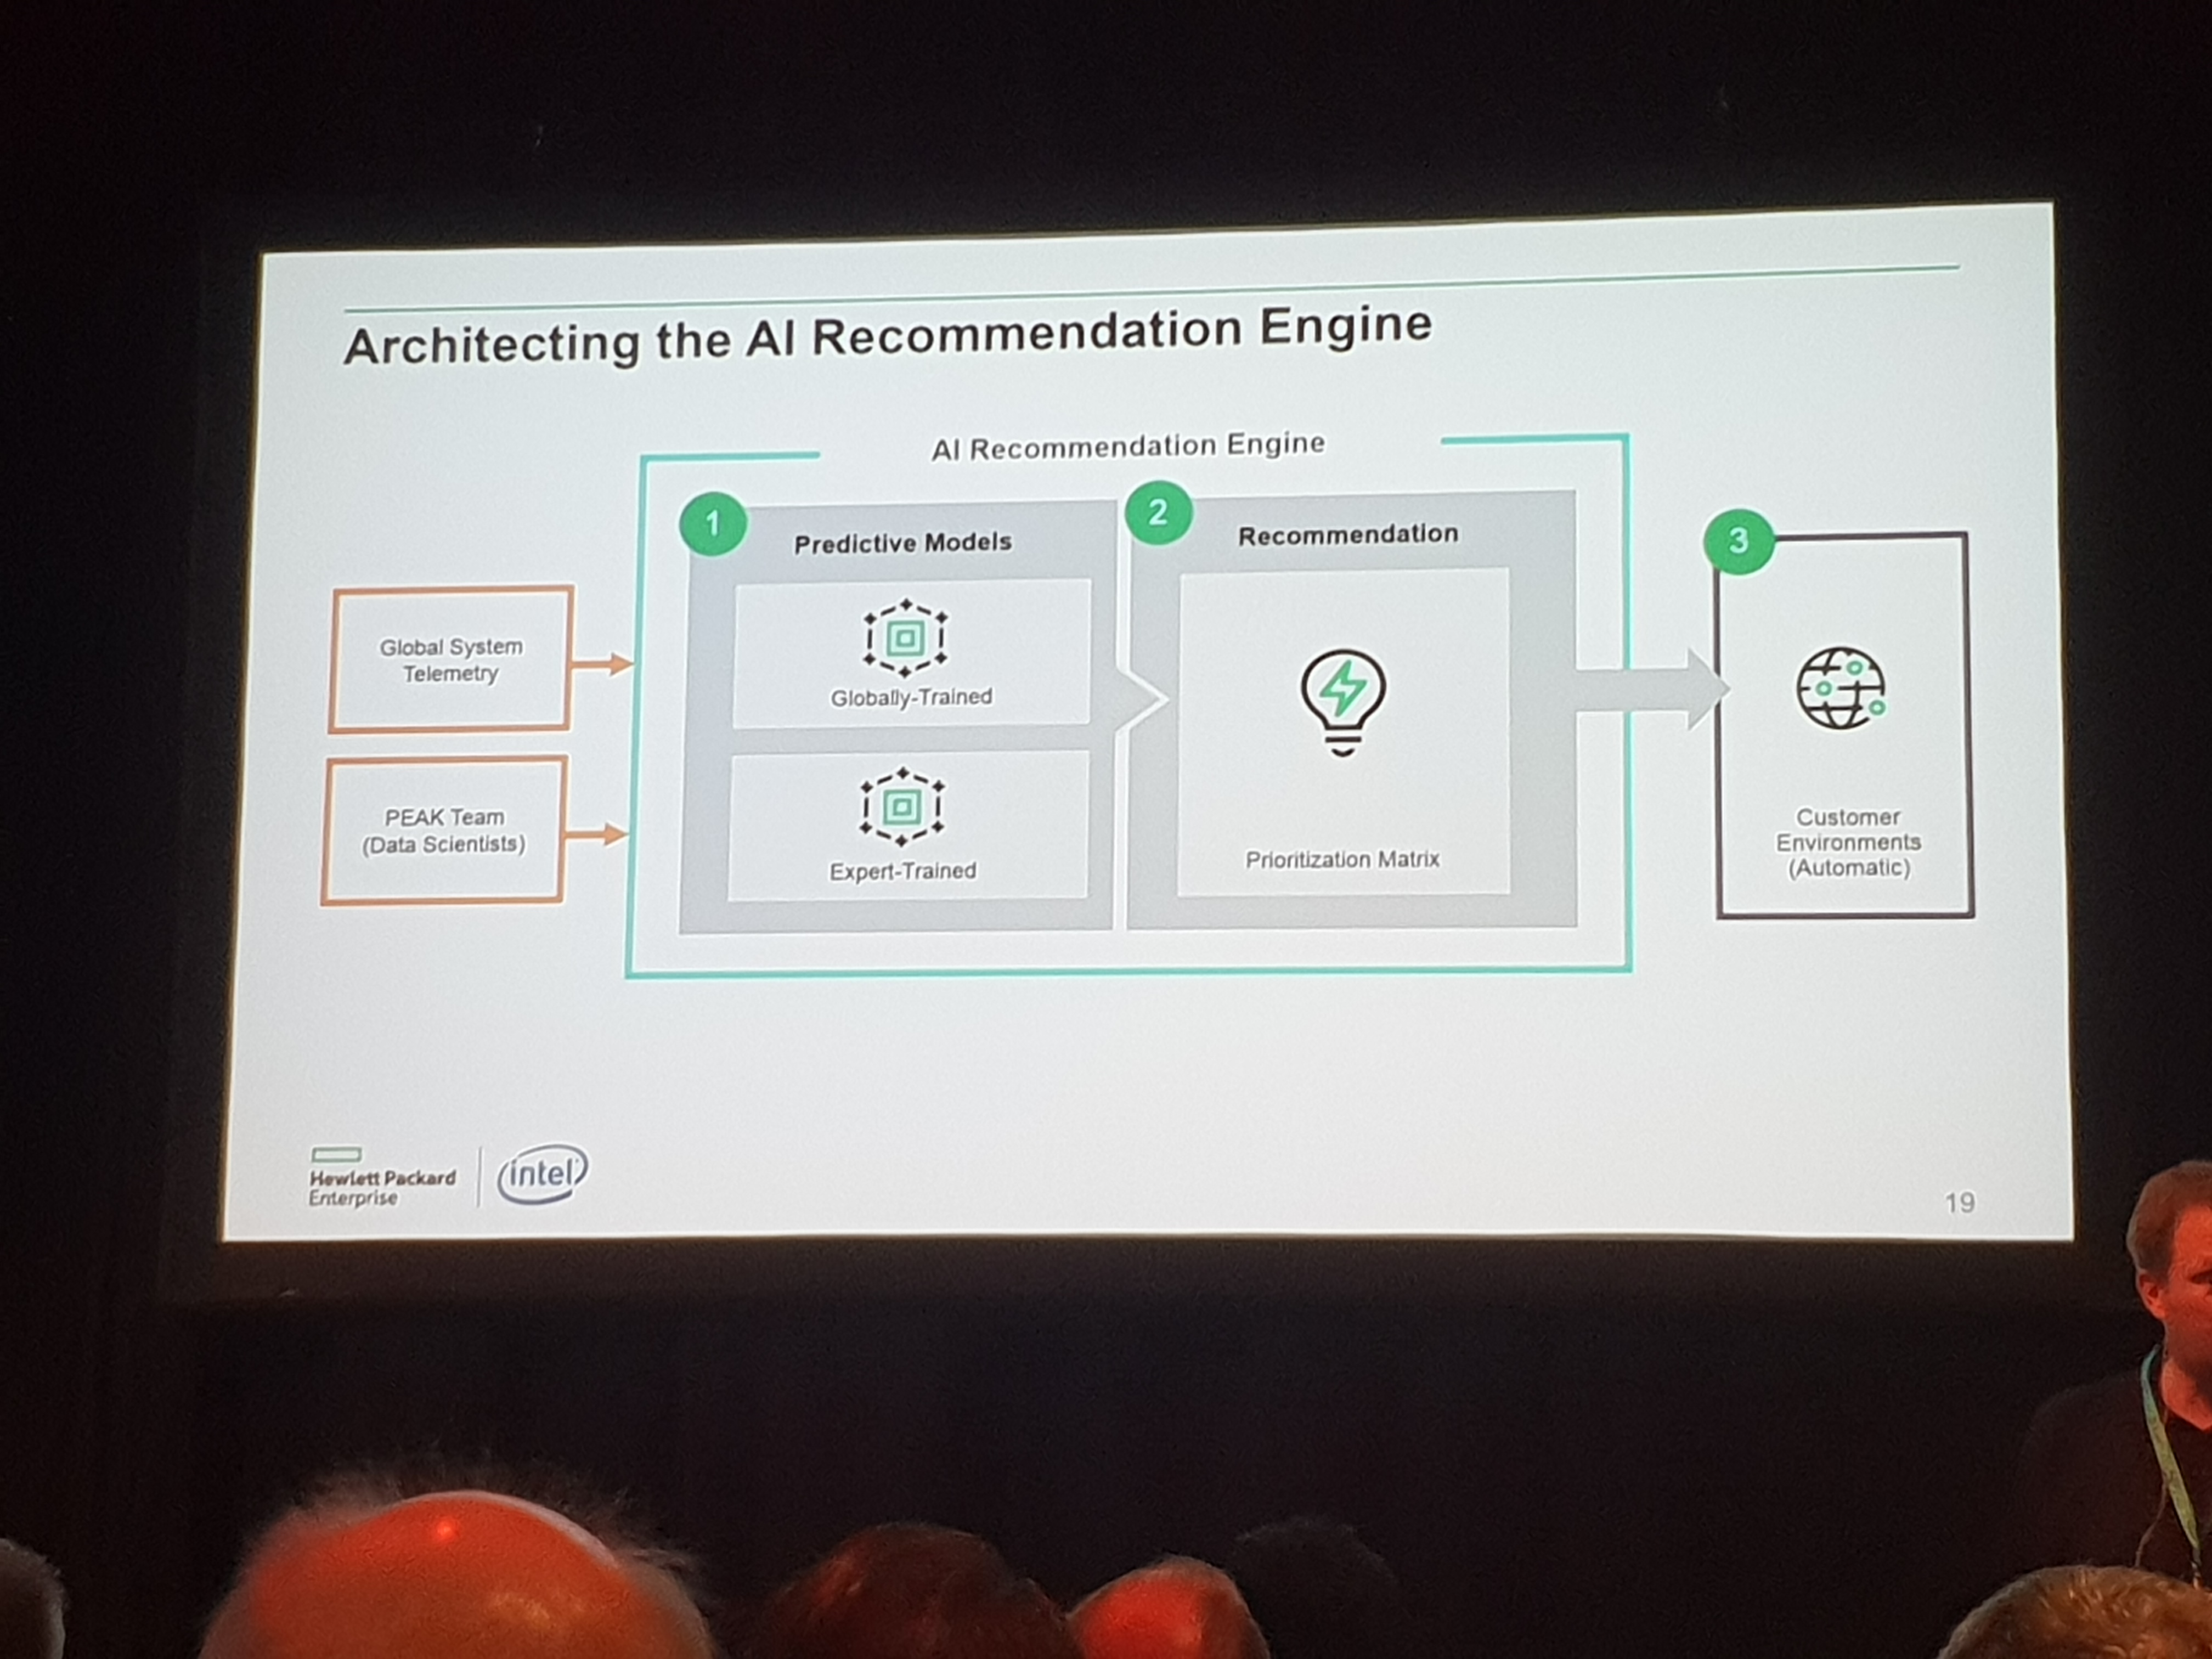 AI for Support - Architecting the AI Recommendation Engine